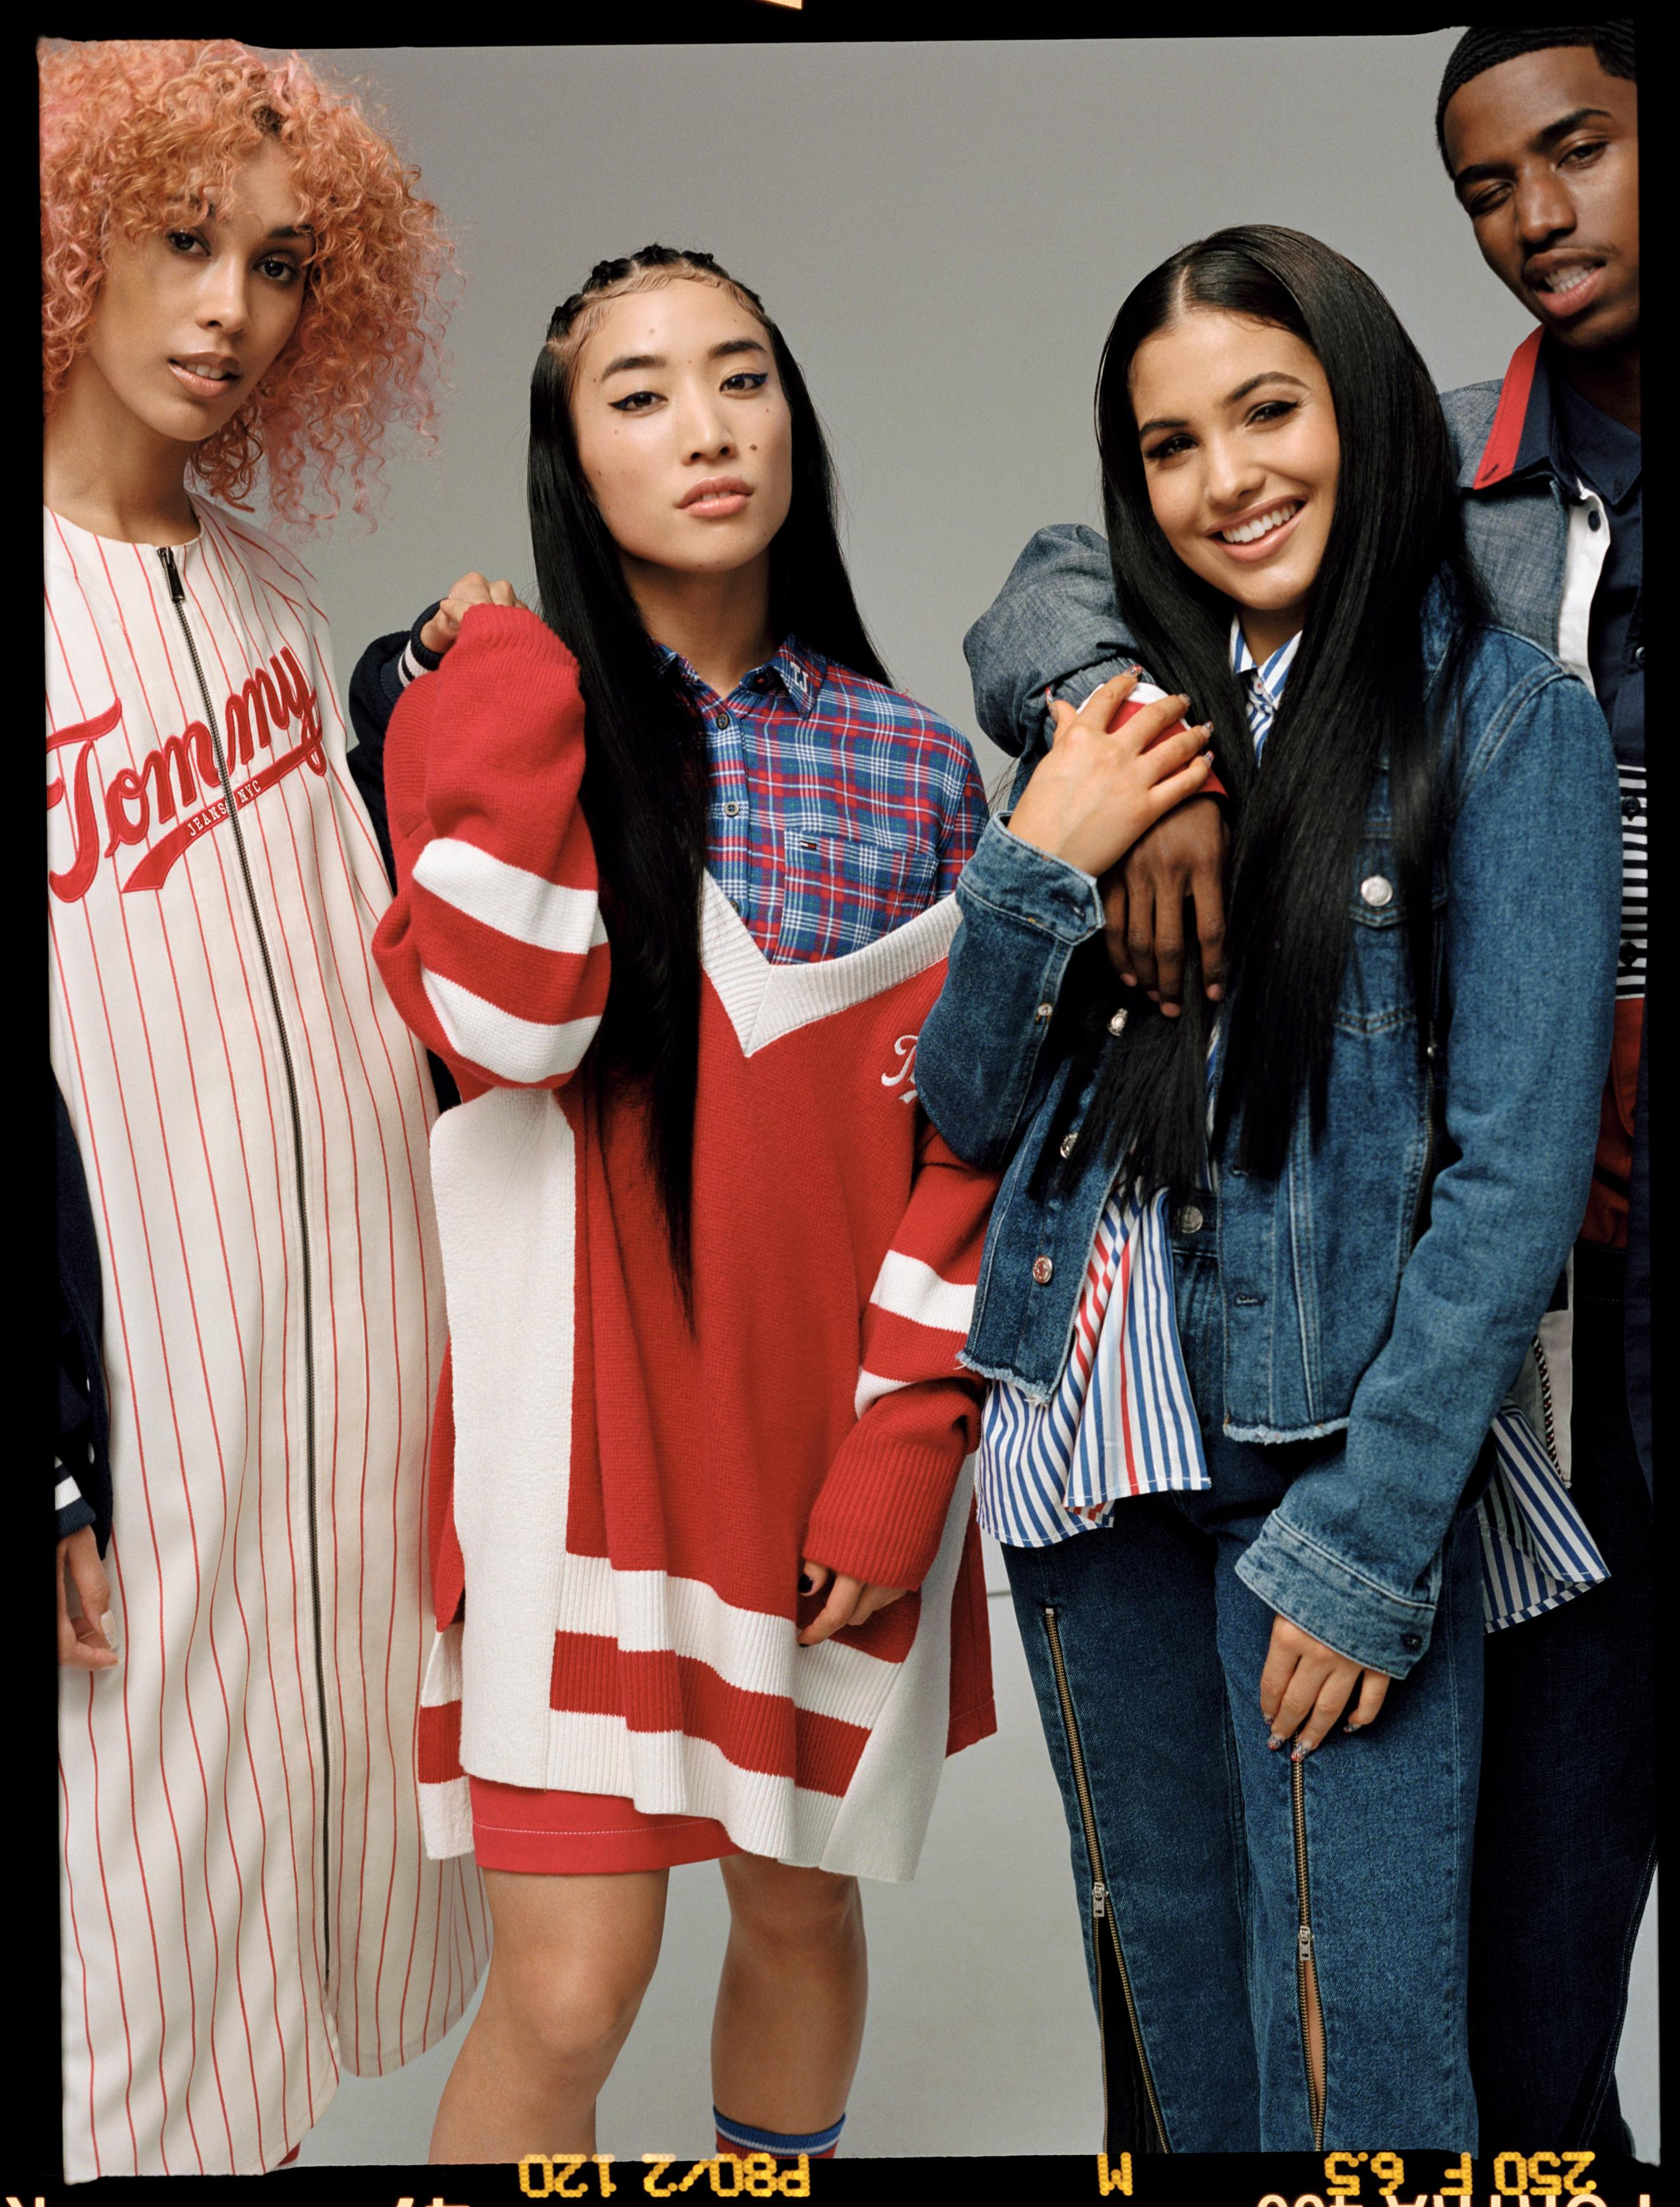 b78fd7ff New Kids On The Block: Tommy Jeans AW18 | Fashion | Clash Magazine